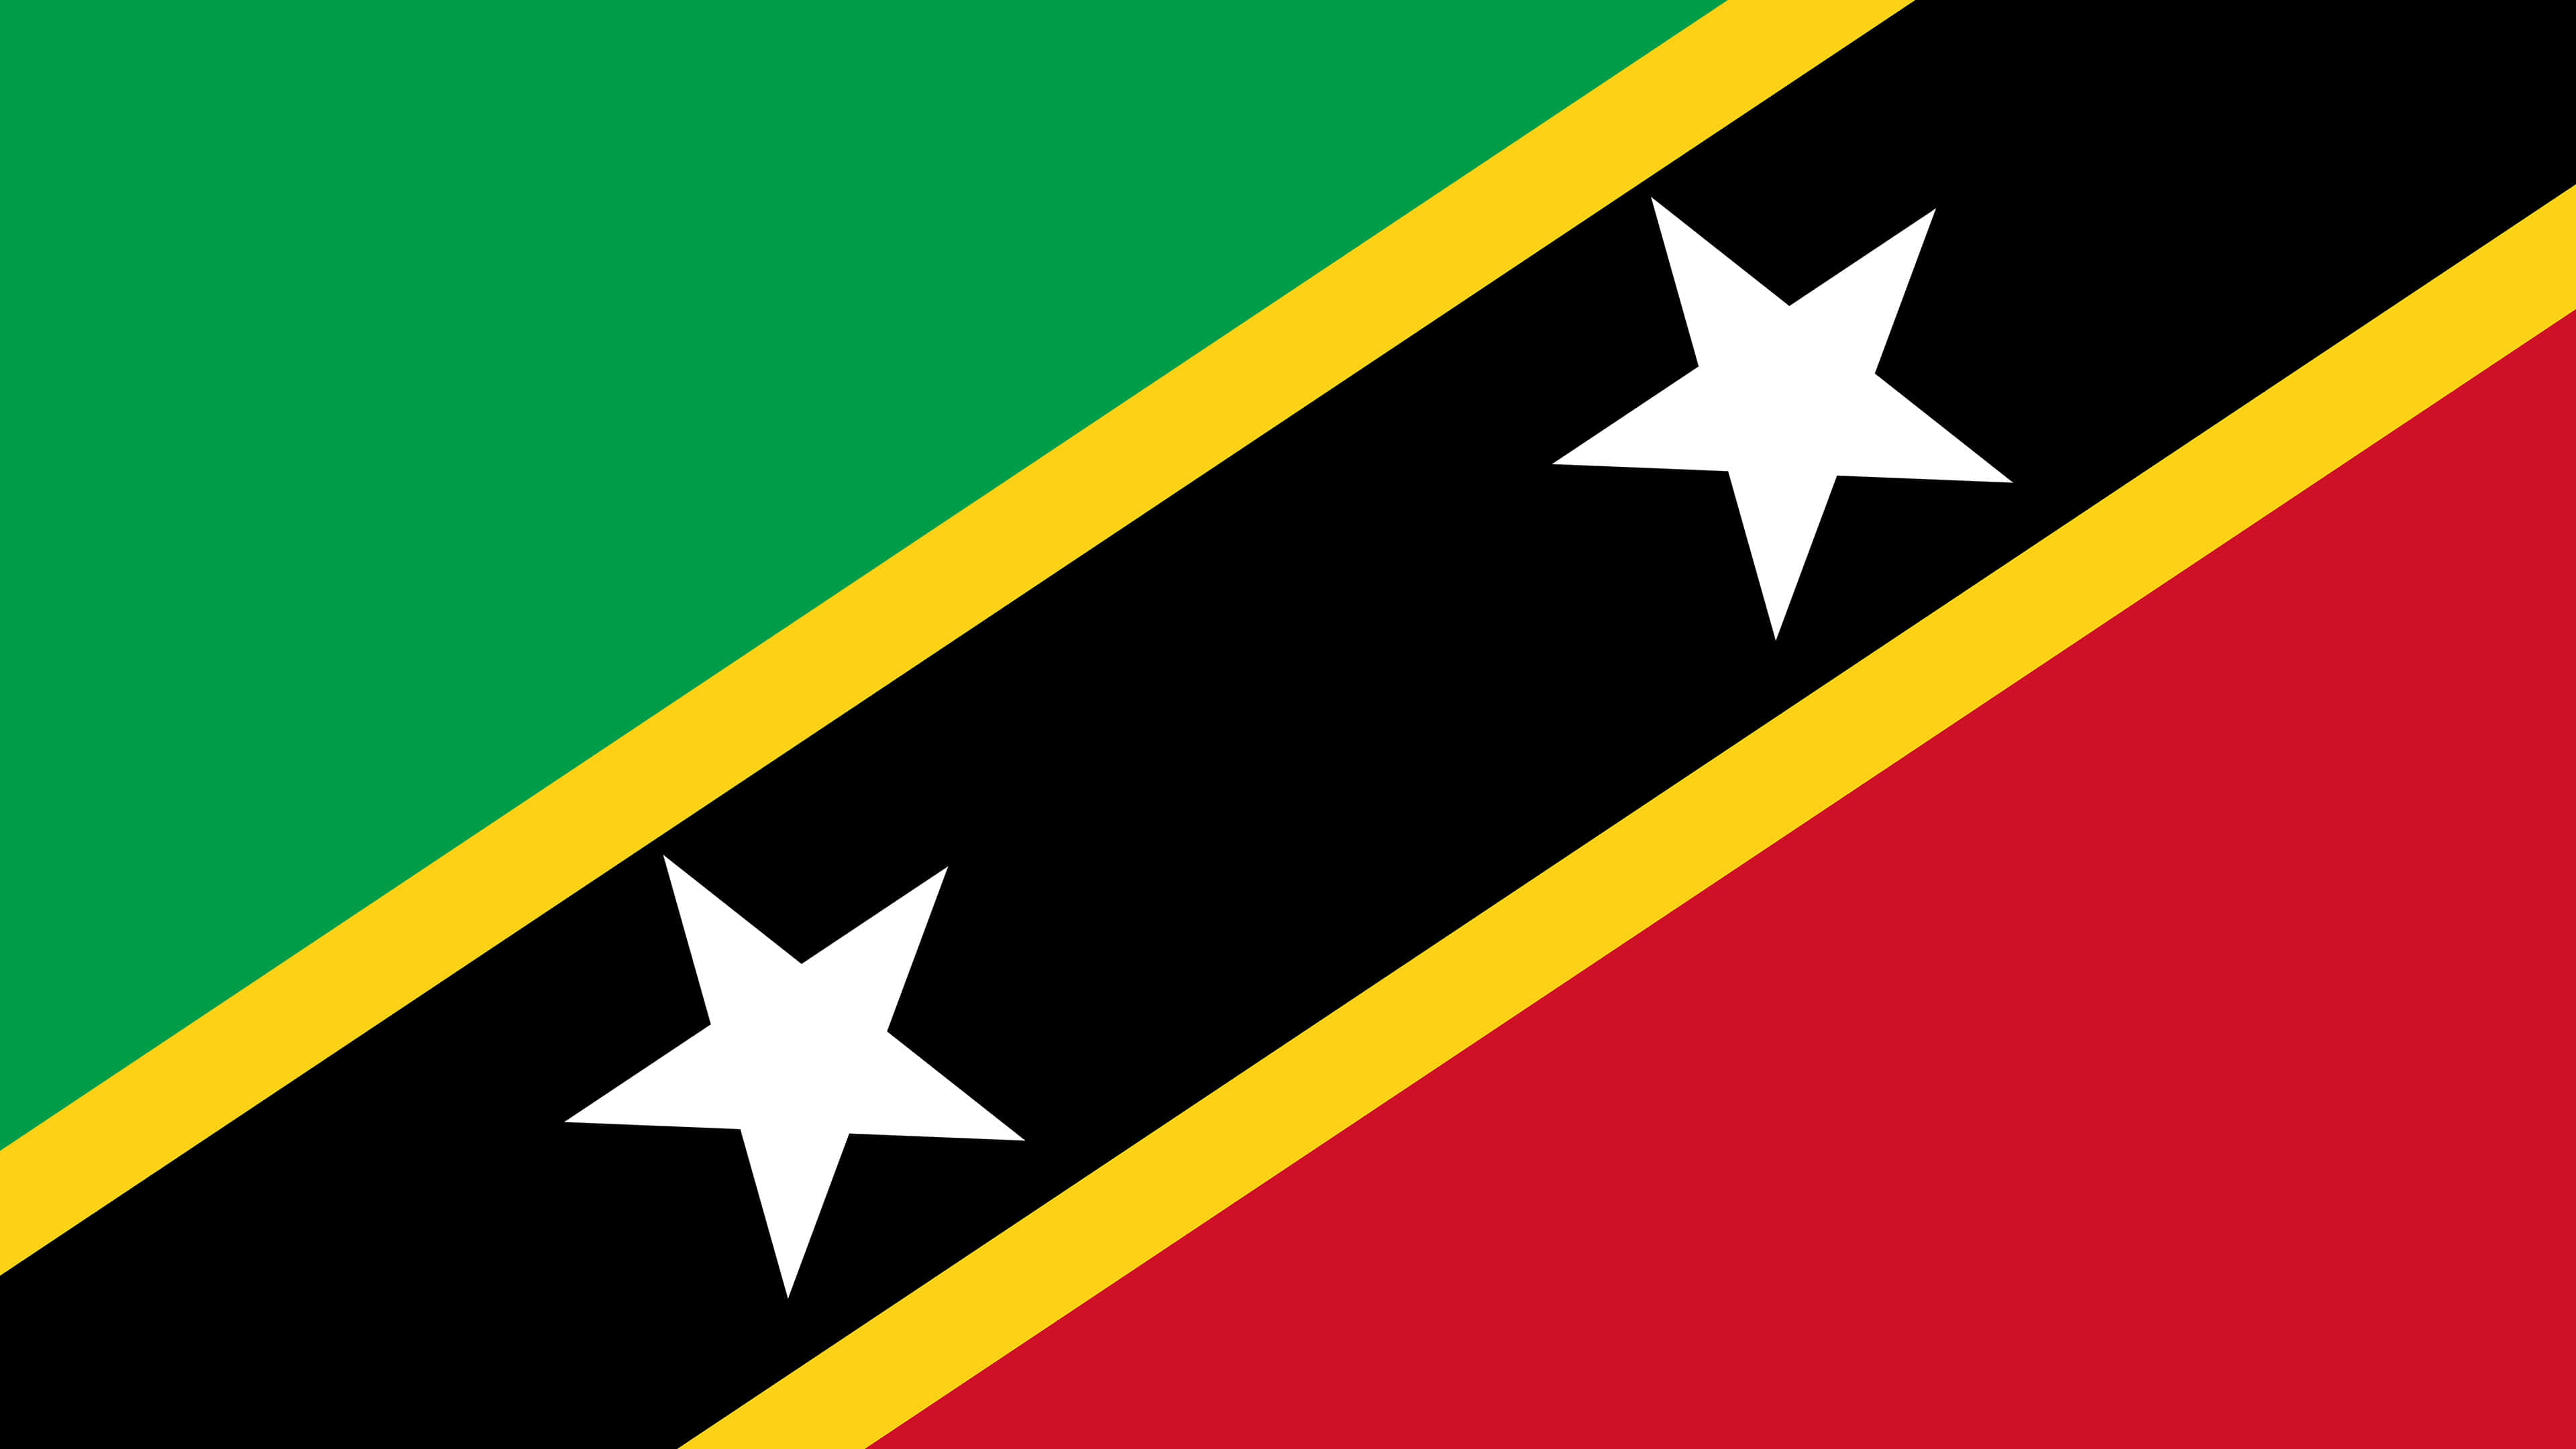 saint kitts and nevis flag uhd 4k wallpaper